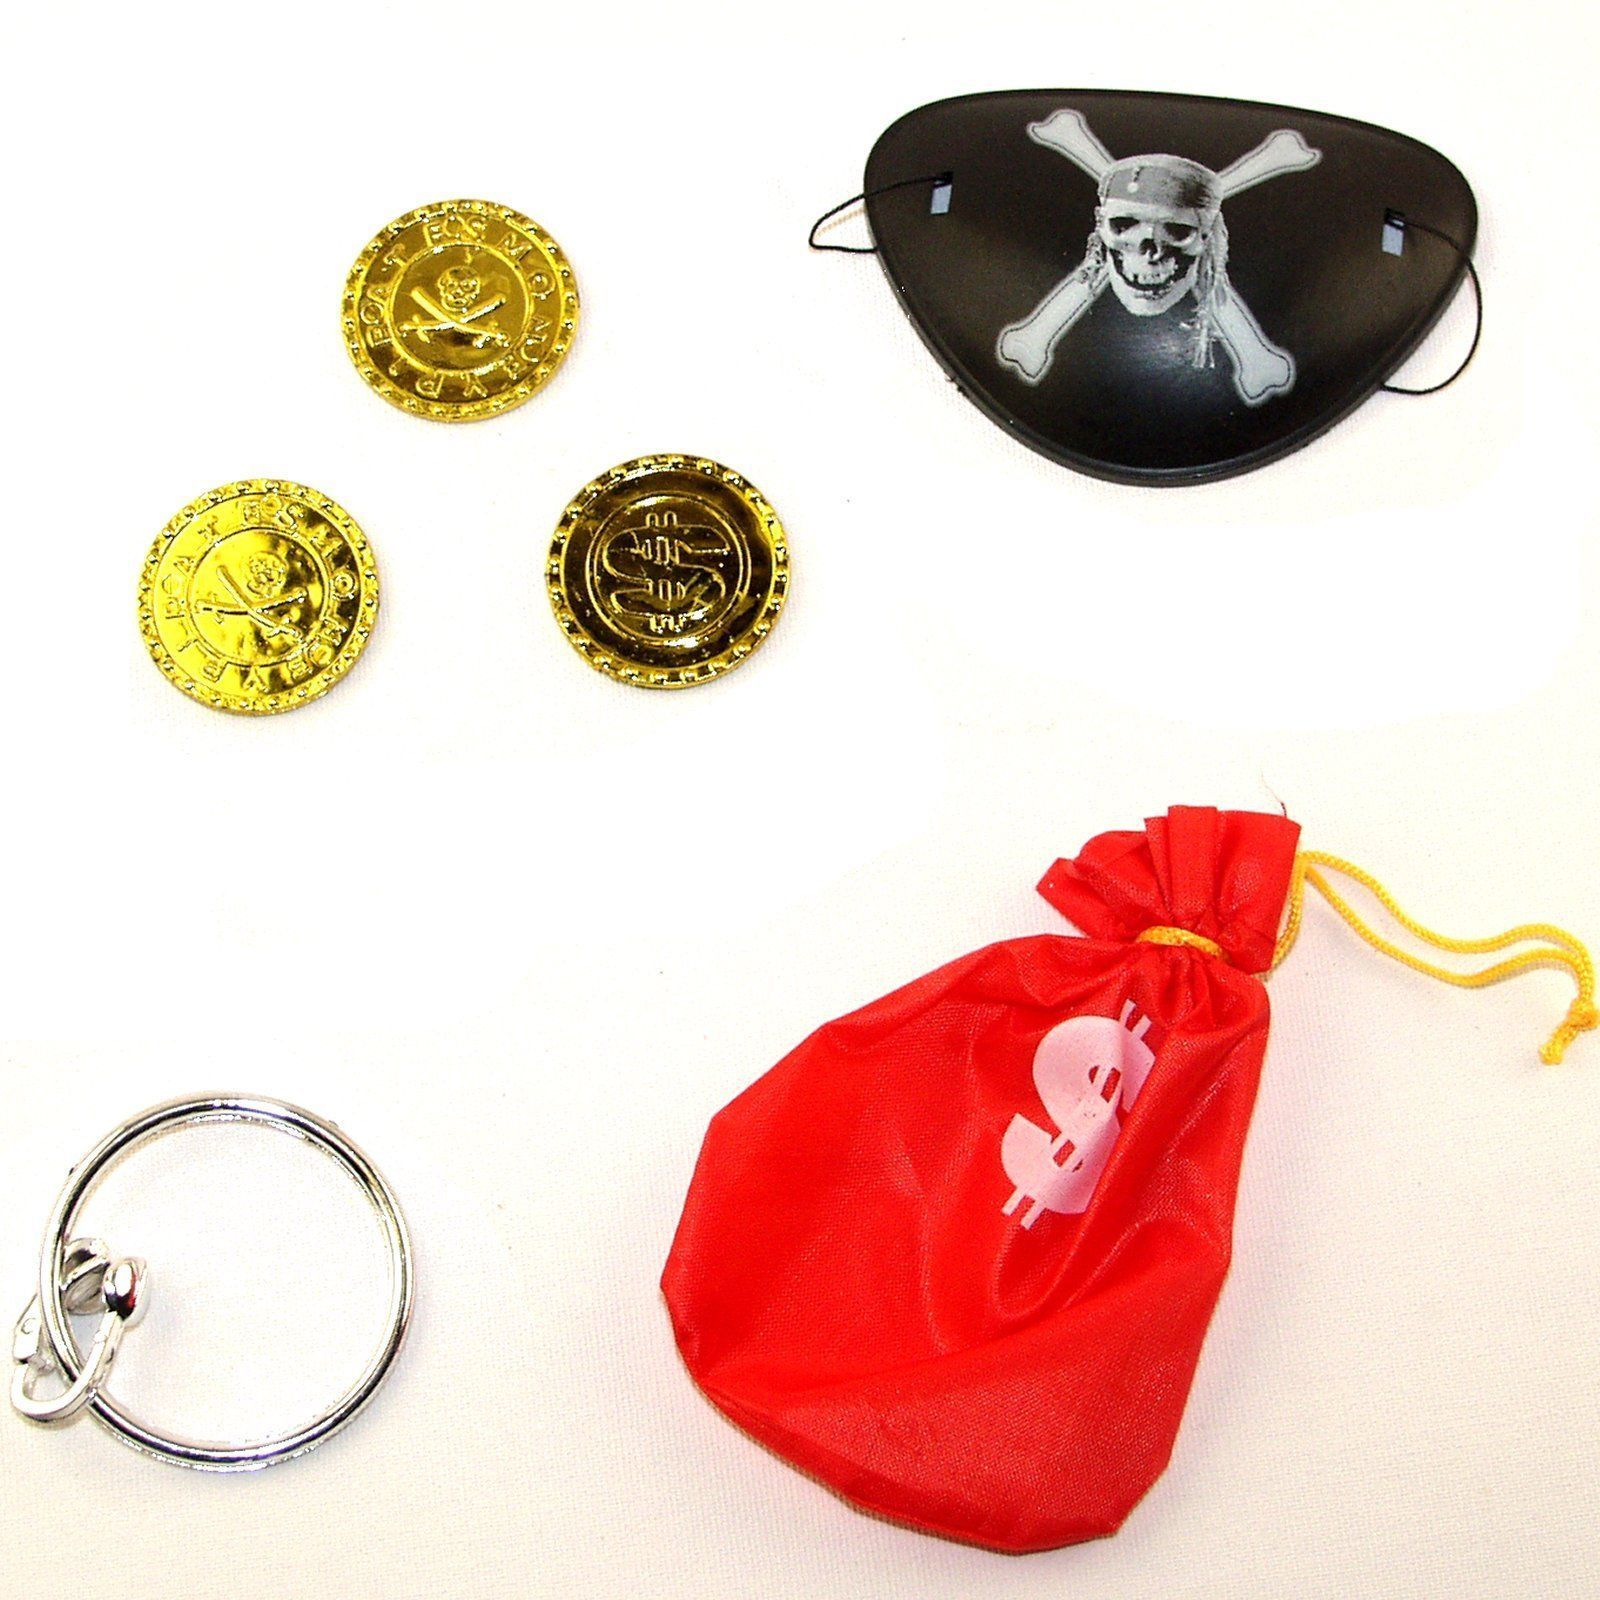 Pirate Money Bag 9Cm With Coins Set